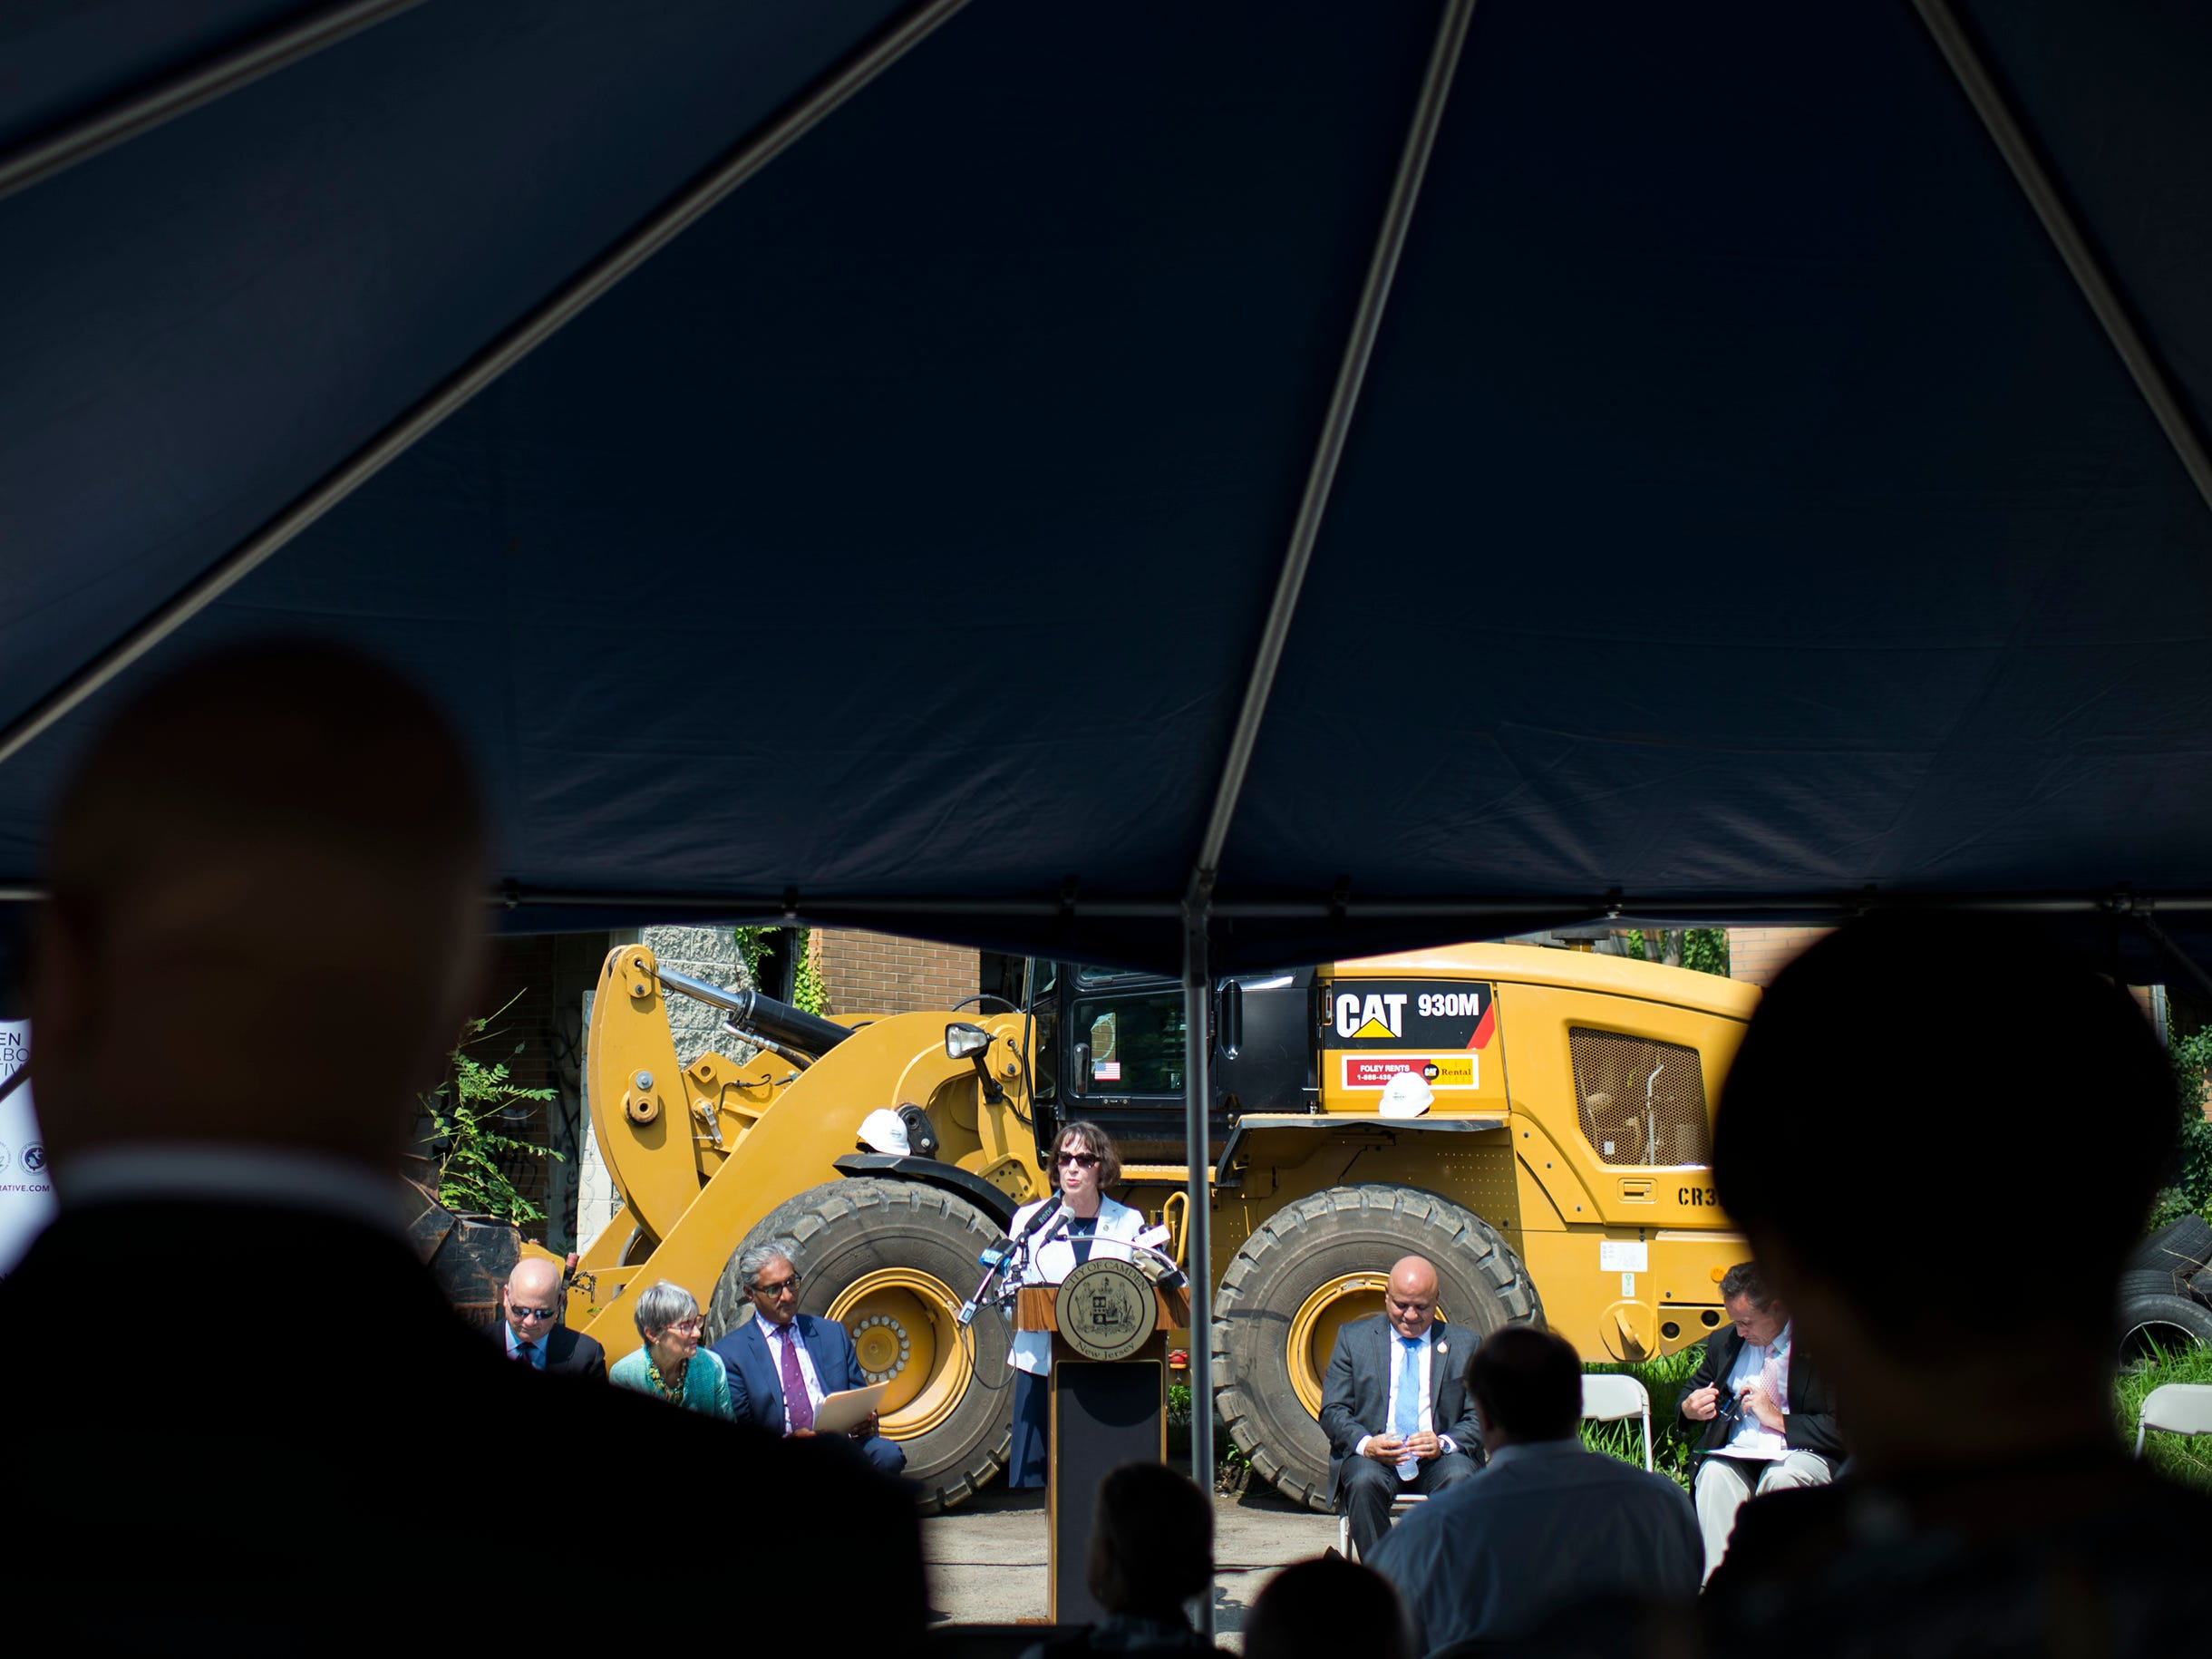 A press conference is held at the Camden Labs site Wednesday, Aug. 15, 2018 in Camden, N.J. The former toxic and illegal dumping site will be cleaned and cleared to make way for recreational open space.